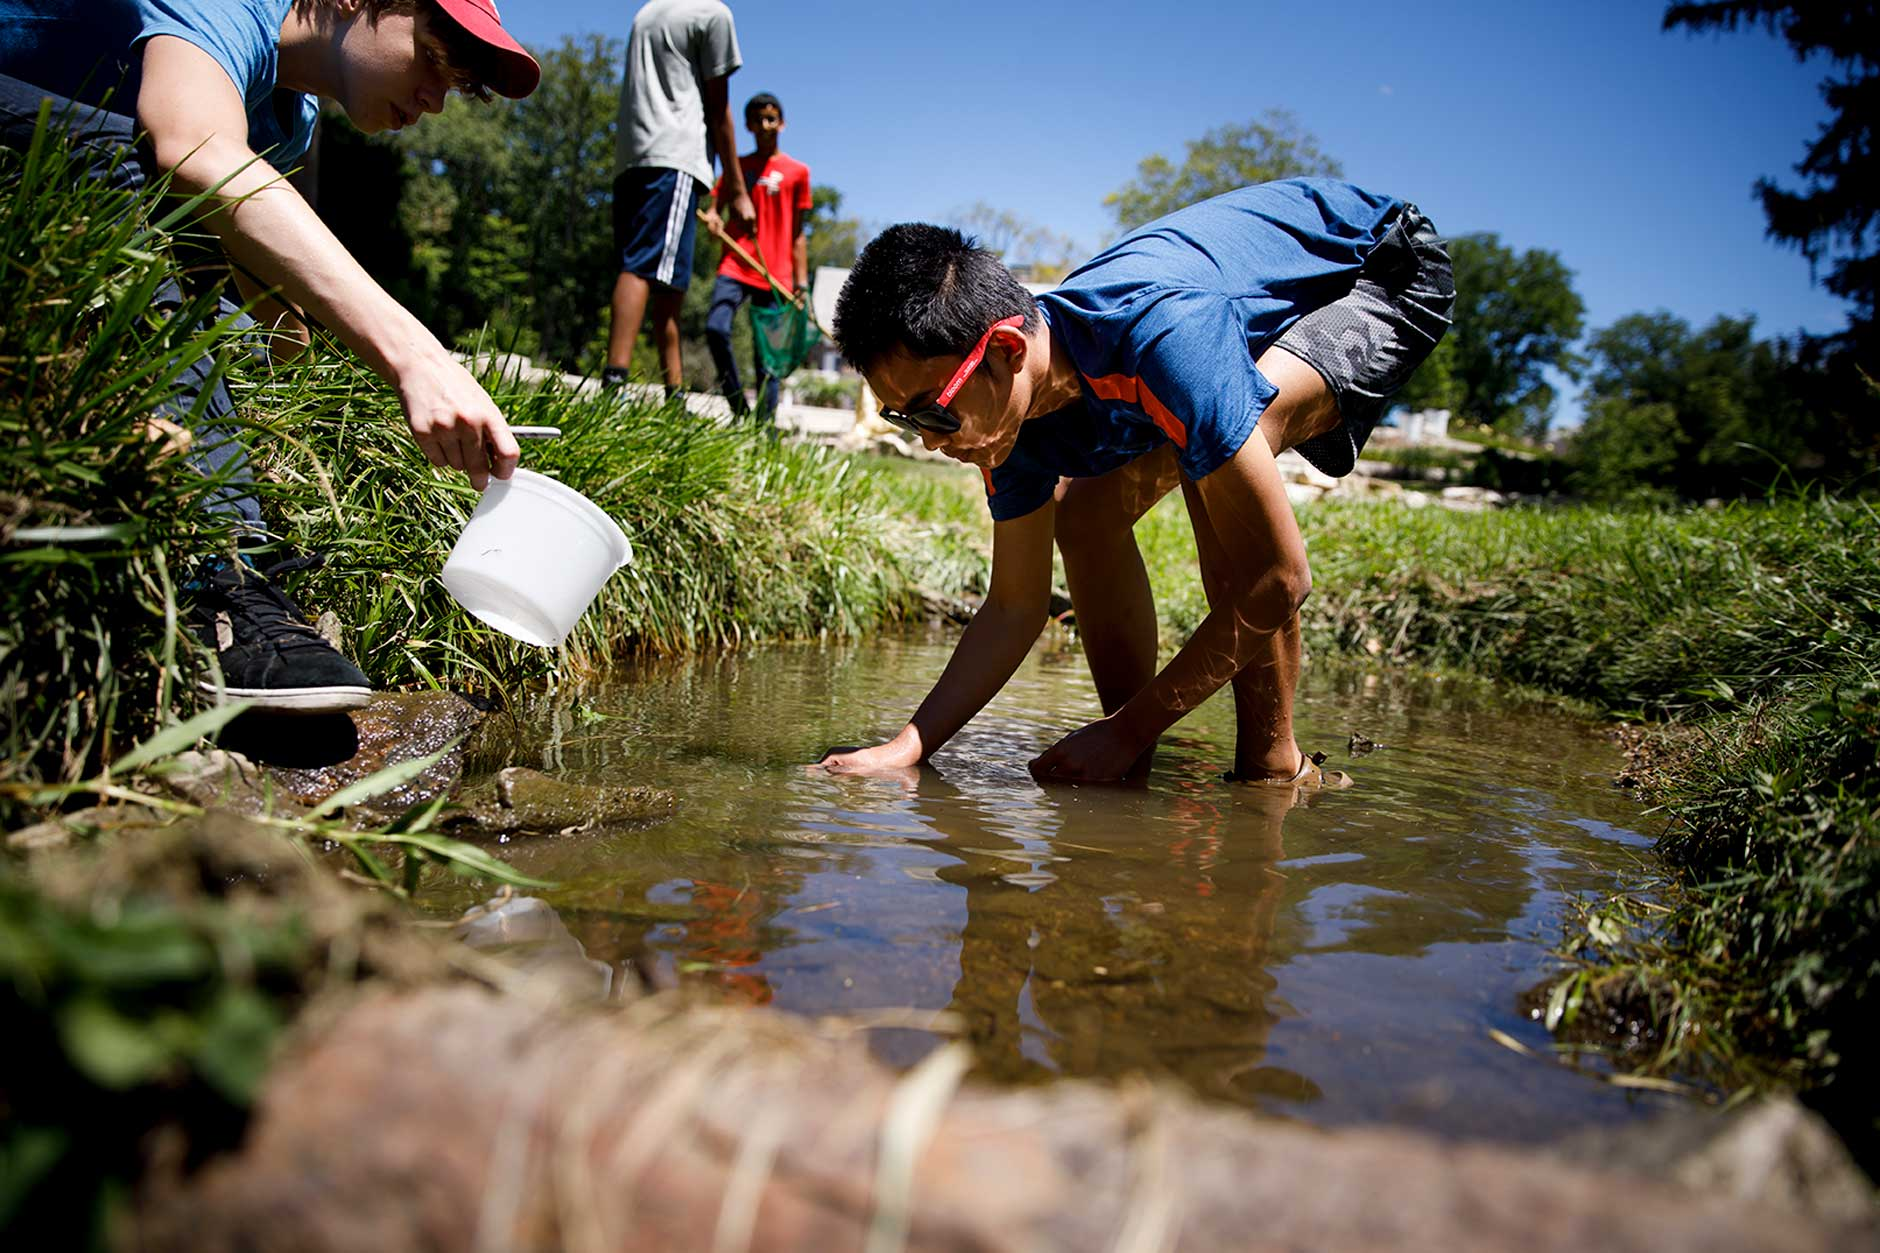 Ravi Wijayanto, center, a ninth grader at Bloomington High School North, attempts to catch a crayfish in the Jordan River near Bryan House on Wednesday, July 18, 2018. The research is part of Foundations in Science and Mathematics, a two-week summer course for high school students. (James Brosher/IU Communications)